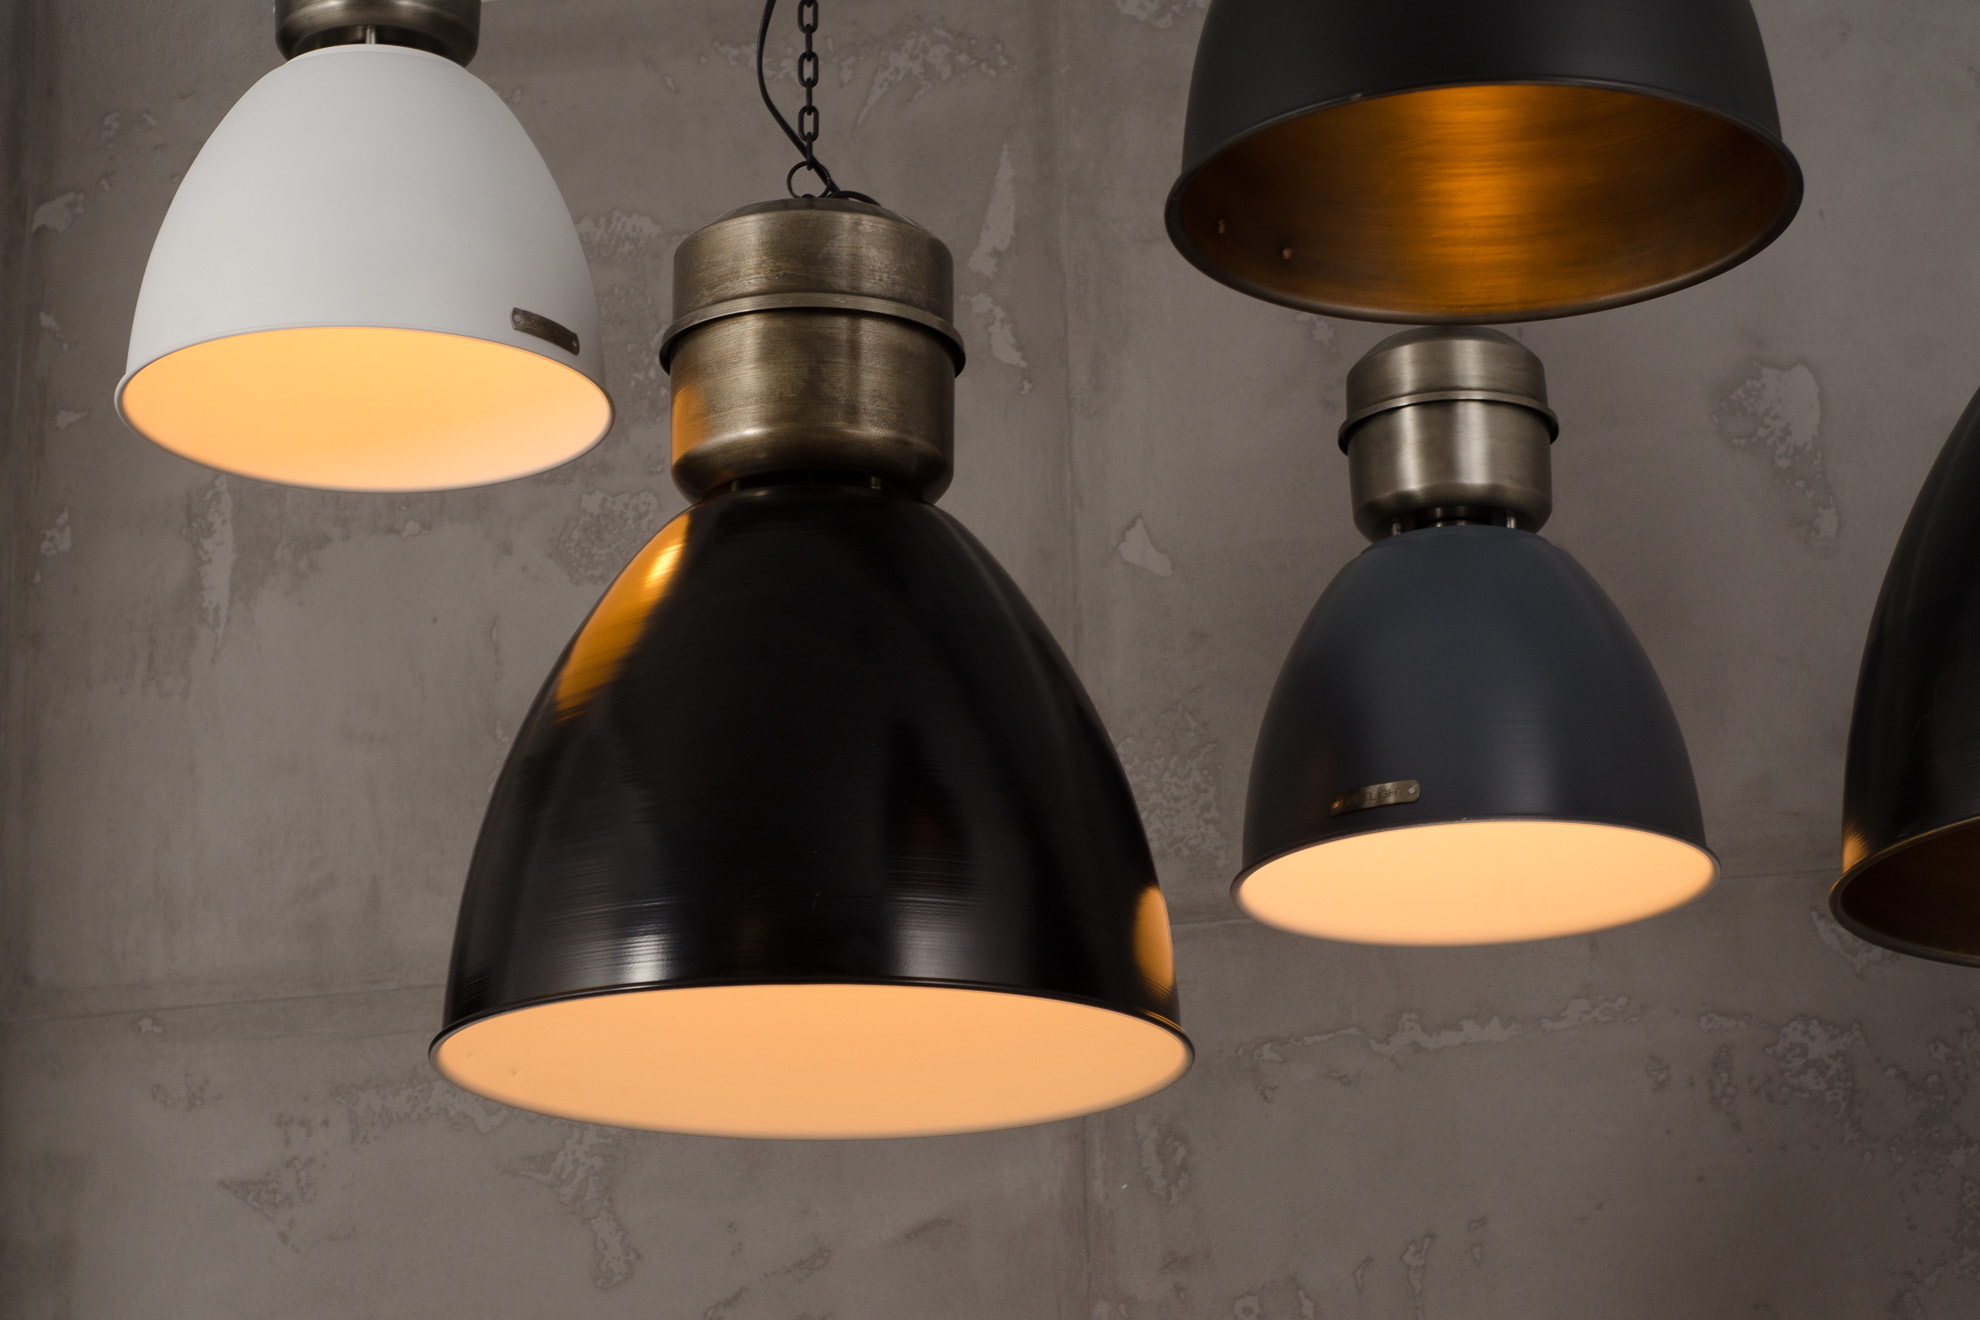 Voltera 46 cm - Matt Black / Brass - LOFTLIGHT